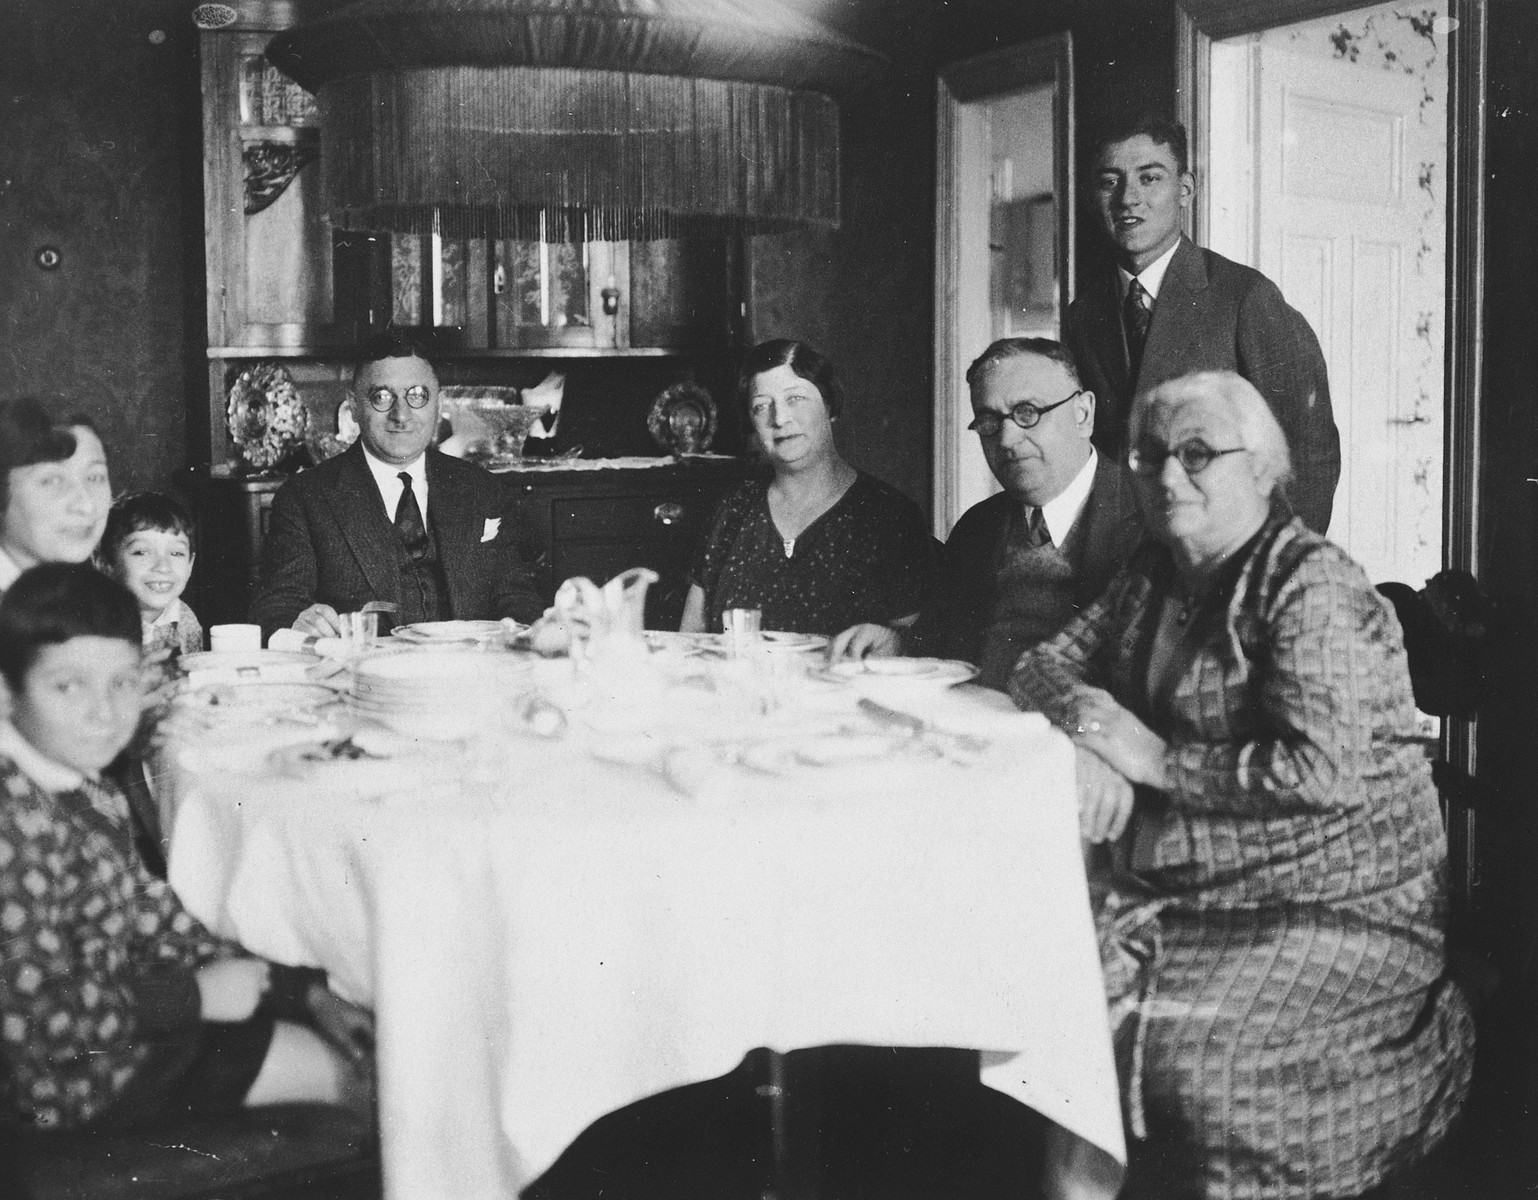 A Lithuanian Jewish family gathers around their dining room family.  Dr. Elias Sedlis sits at the head of the table.  To his right are his wife Anna and two sons, Alexander and Gabriel.  To his left is his sister Miriam, her husband, and his mother Shayne.  David Cukierman is standing.